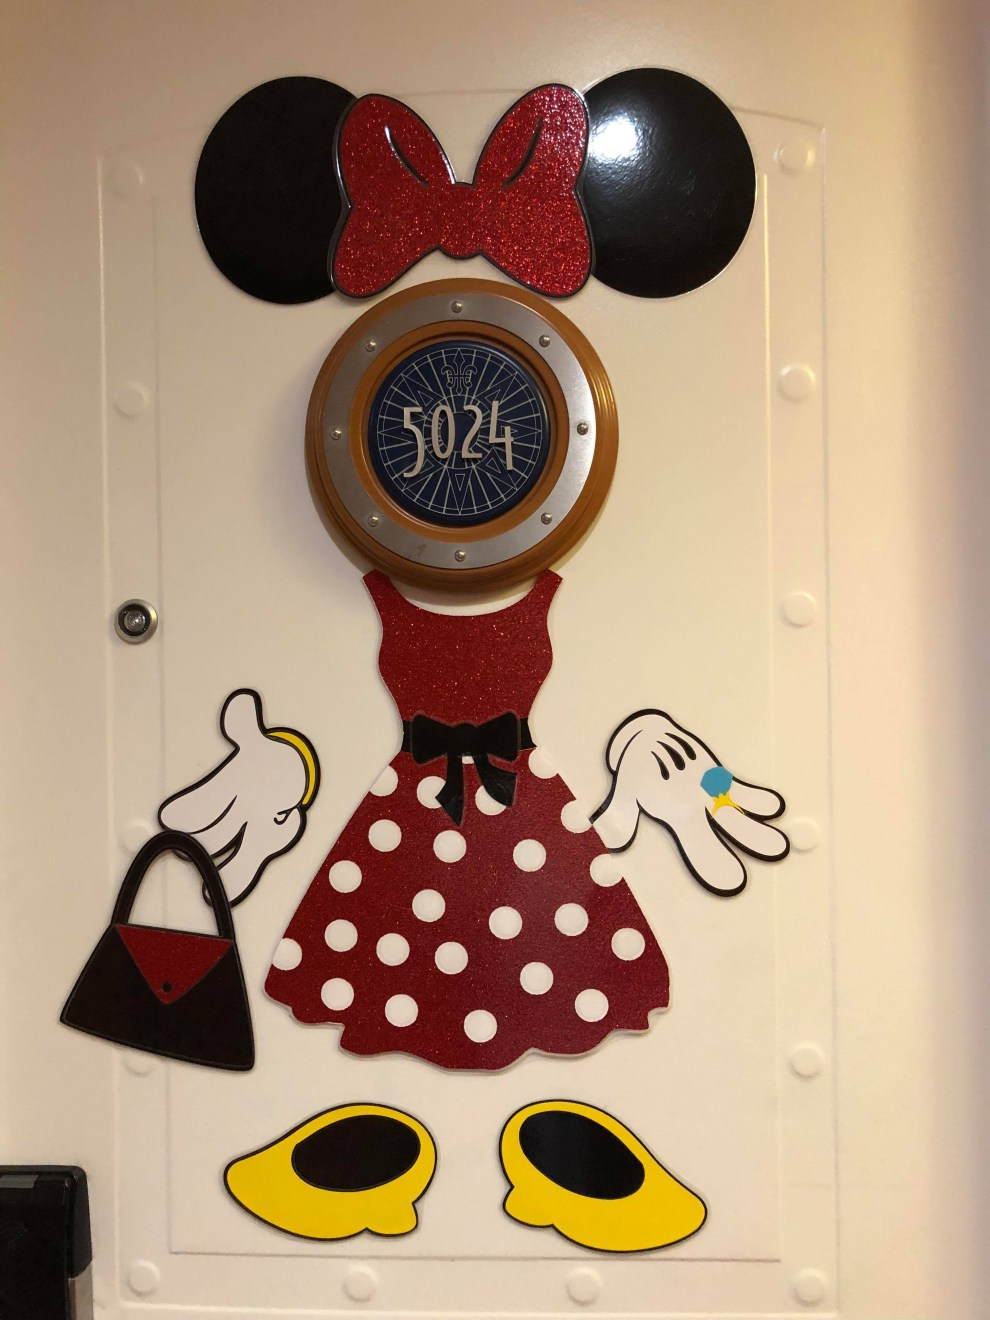 Decorate Your Cruise Door In Style With These Disney Cruise Door